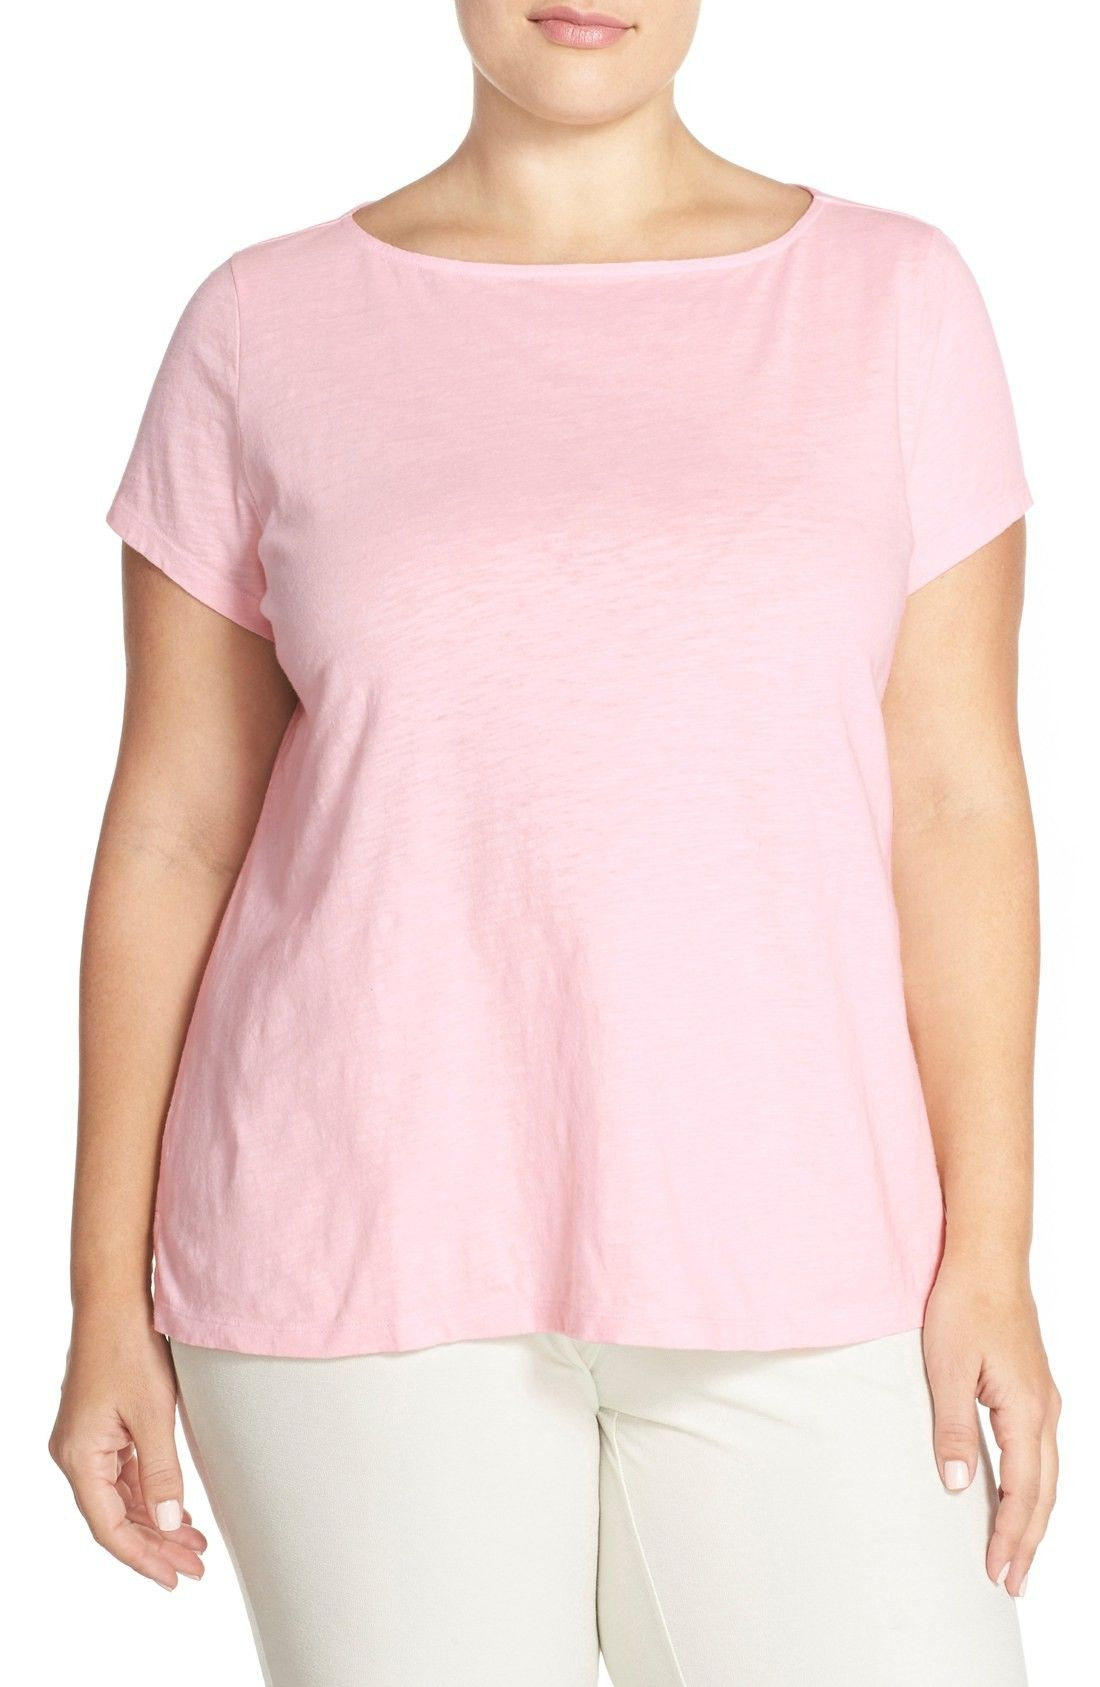 5e2fed1b Eileen Fisher Short Sleeve Jersey Bateau Neck Top (Plus Size) |  Fashiondoxy.com Description - Free shipping and returns on Eileen Fisher  Short Sleeve Jersey ...